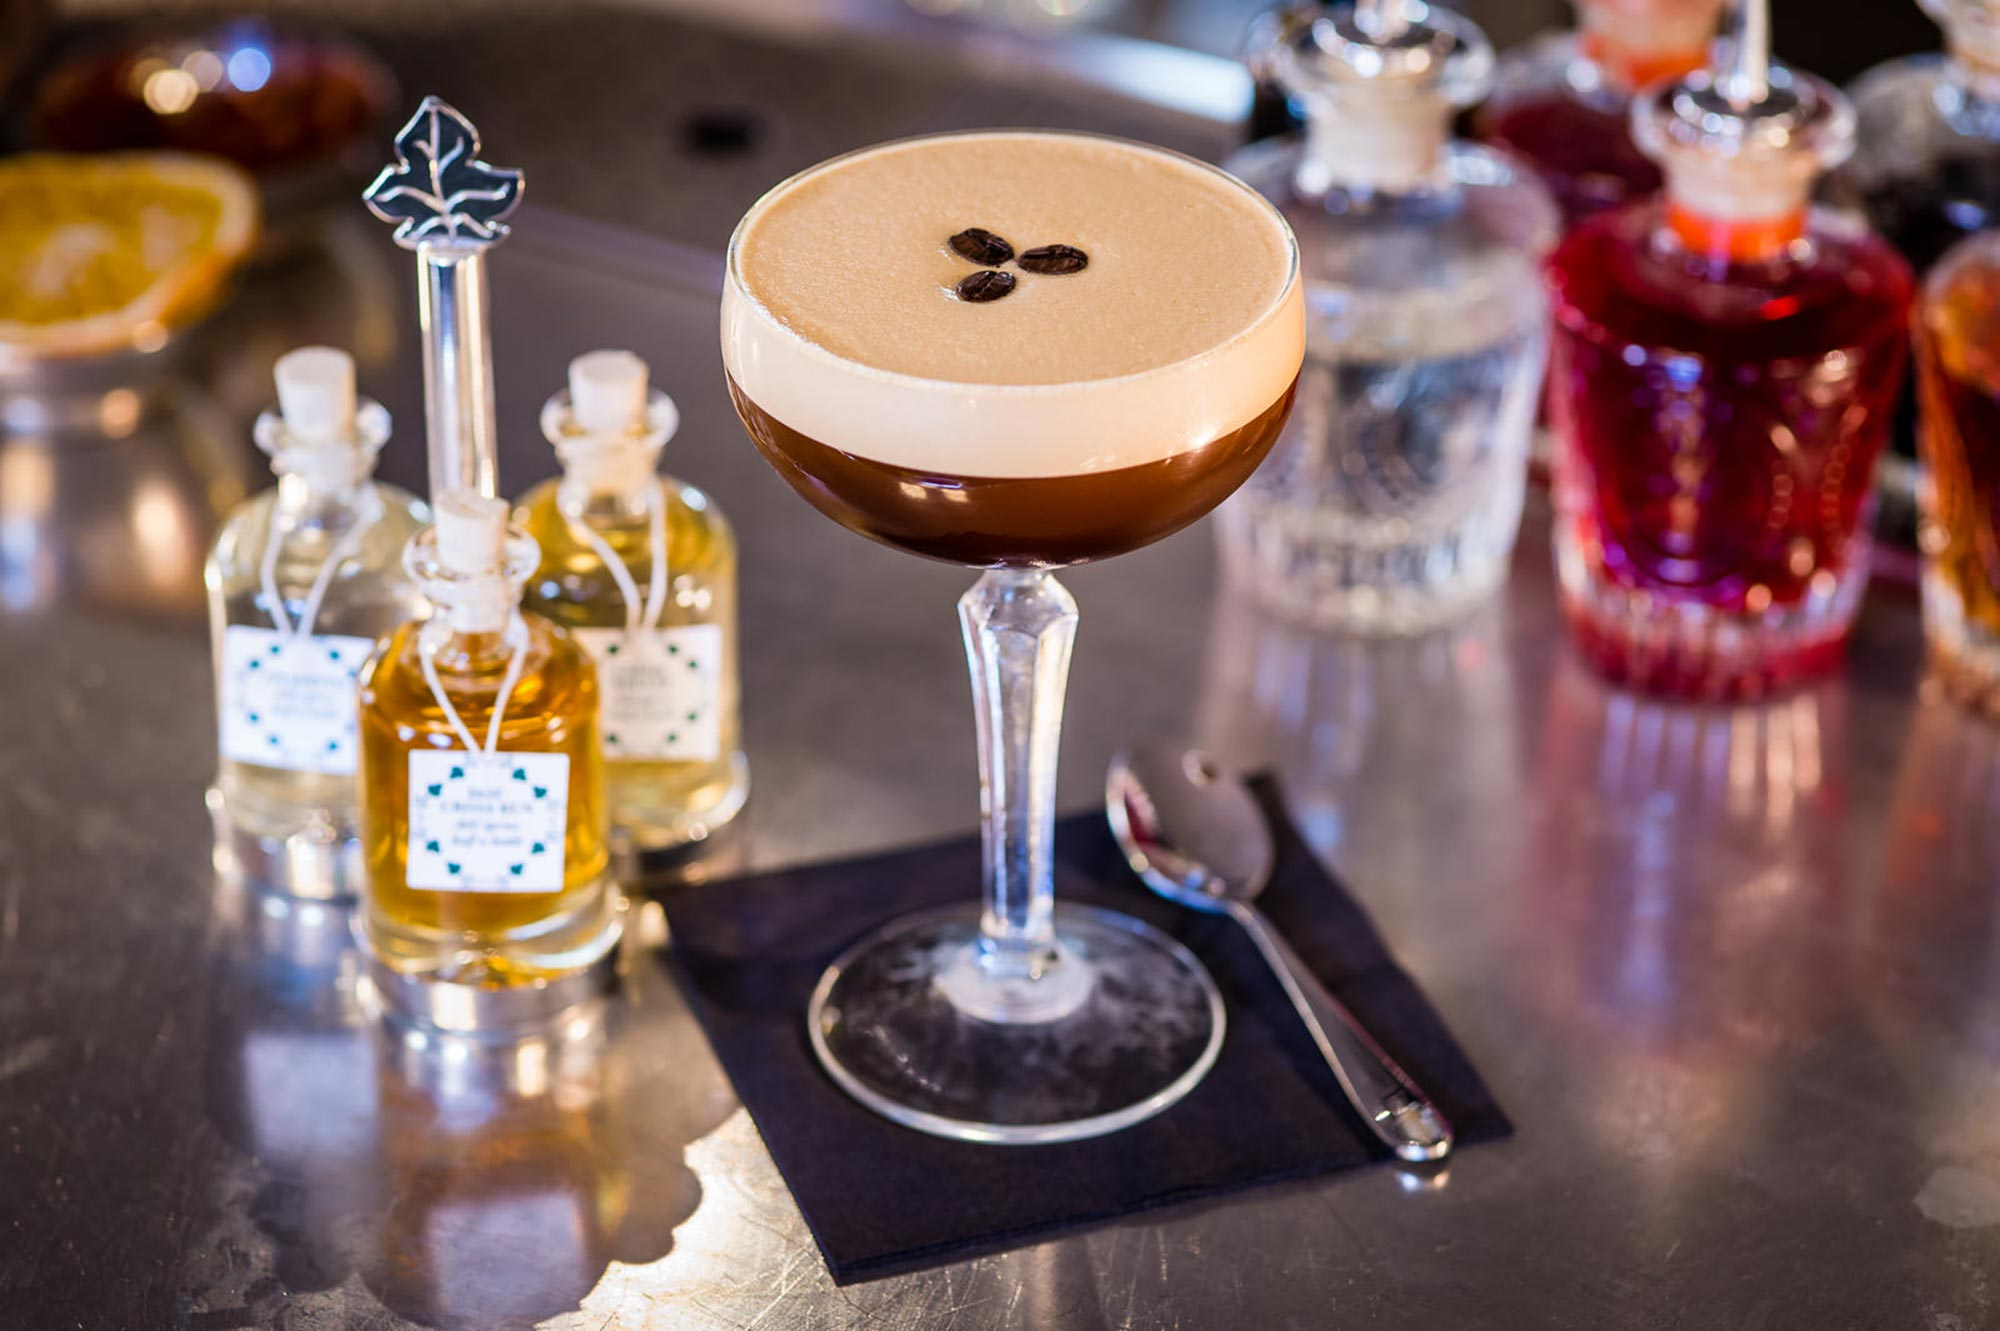 The Ivy Clifton Brasserie, Bristol - The Ivy Collection Espresso Martini and Infusions - The Ivy Clifton Brasserie